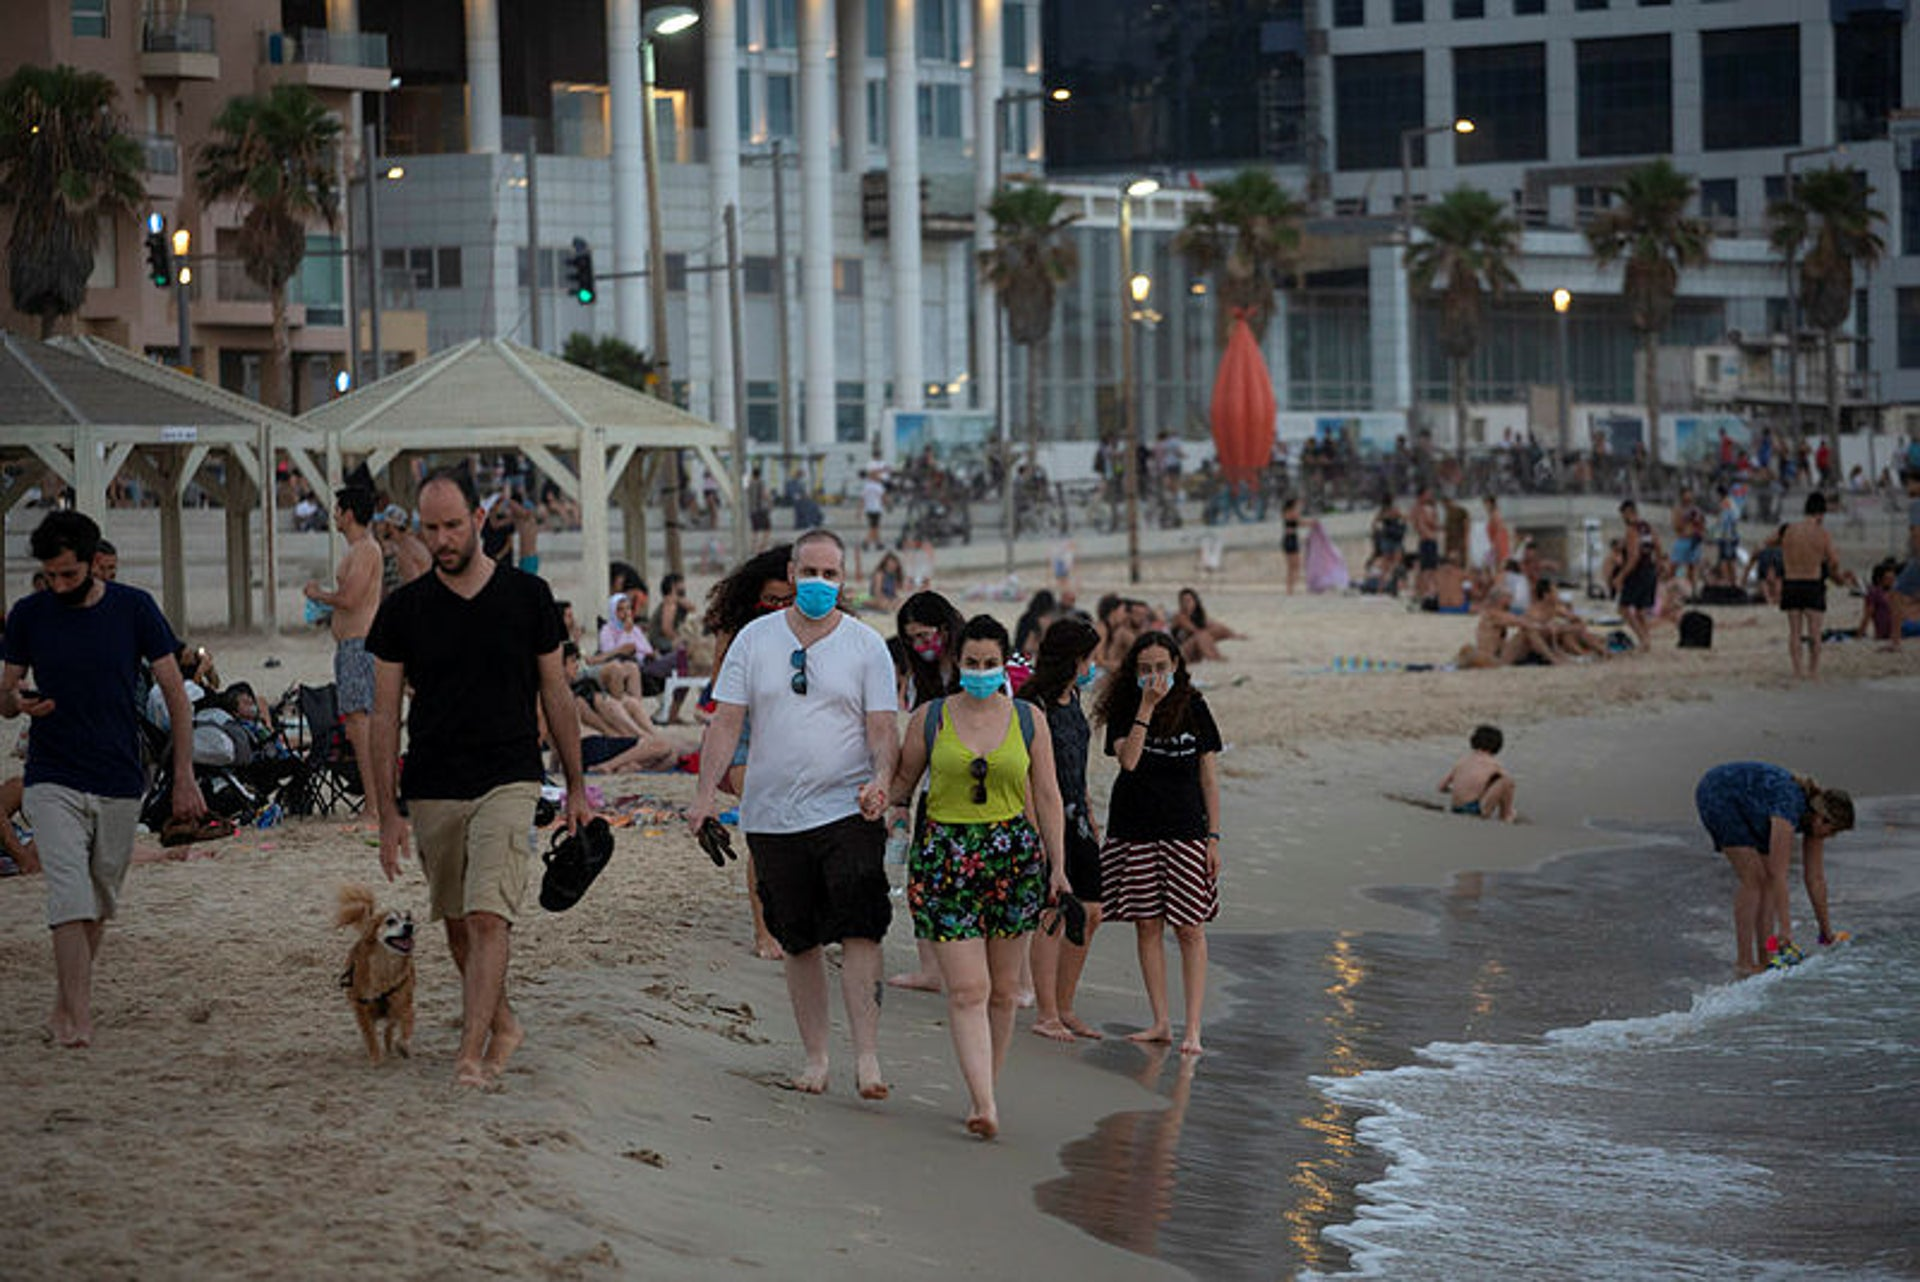 People wearing face masks walk by the beach, Tel Aviv, July 16, 2020.